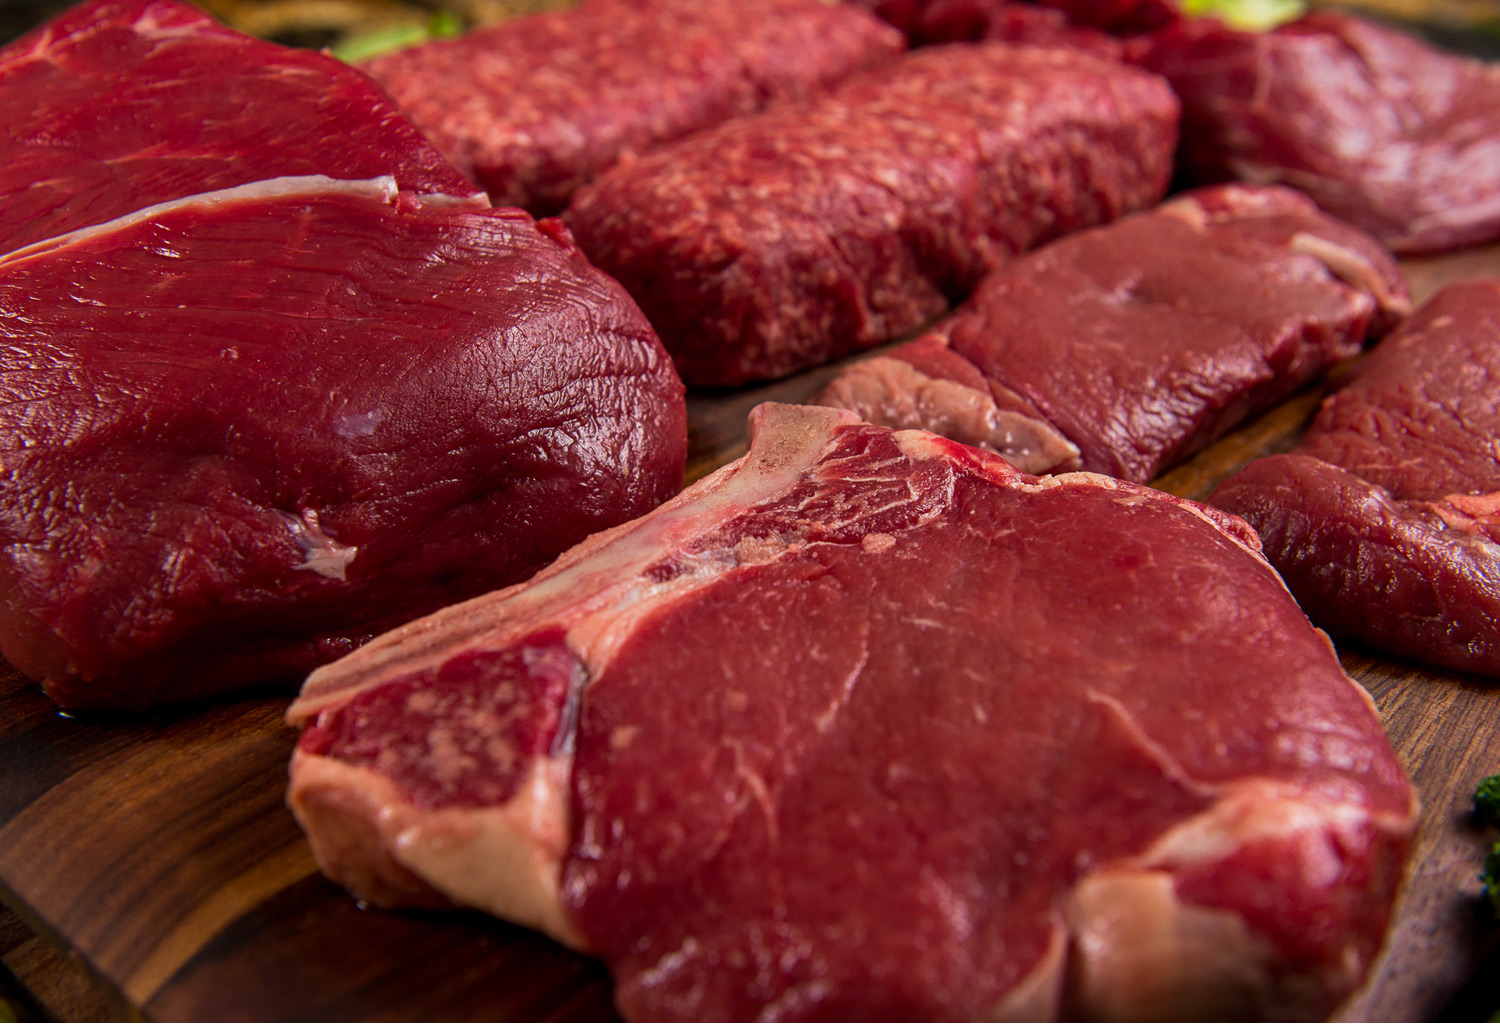 River Watch Beef – Premium Grass-Fed Beef, Roasts and Ribeye's